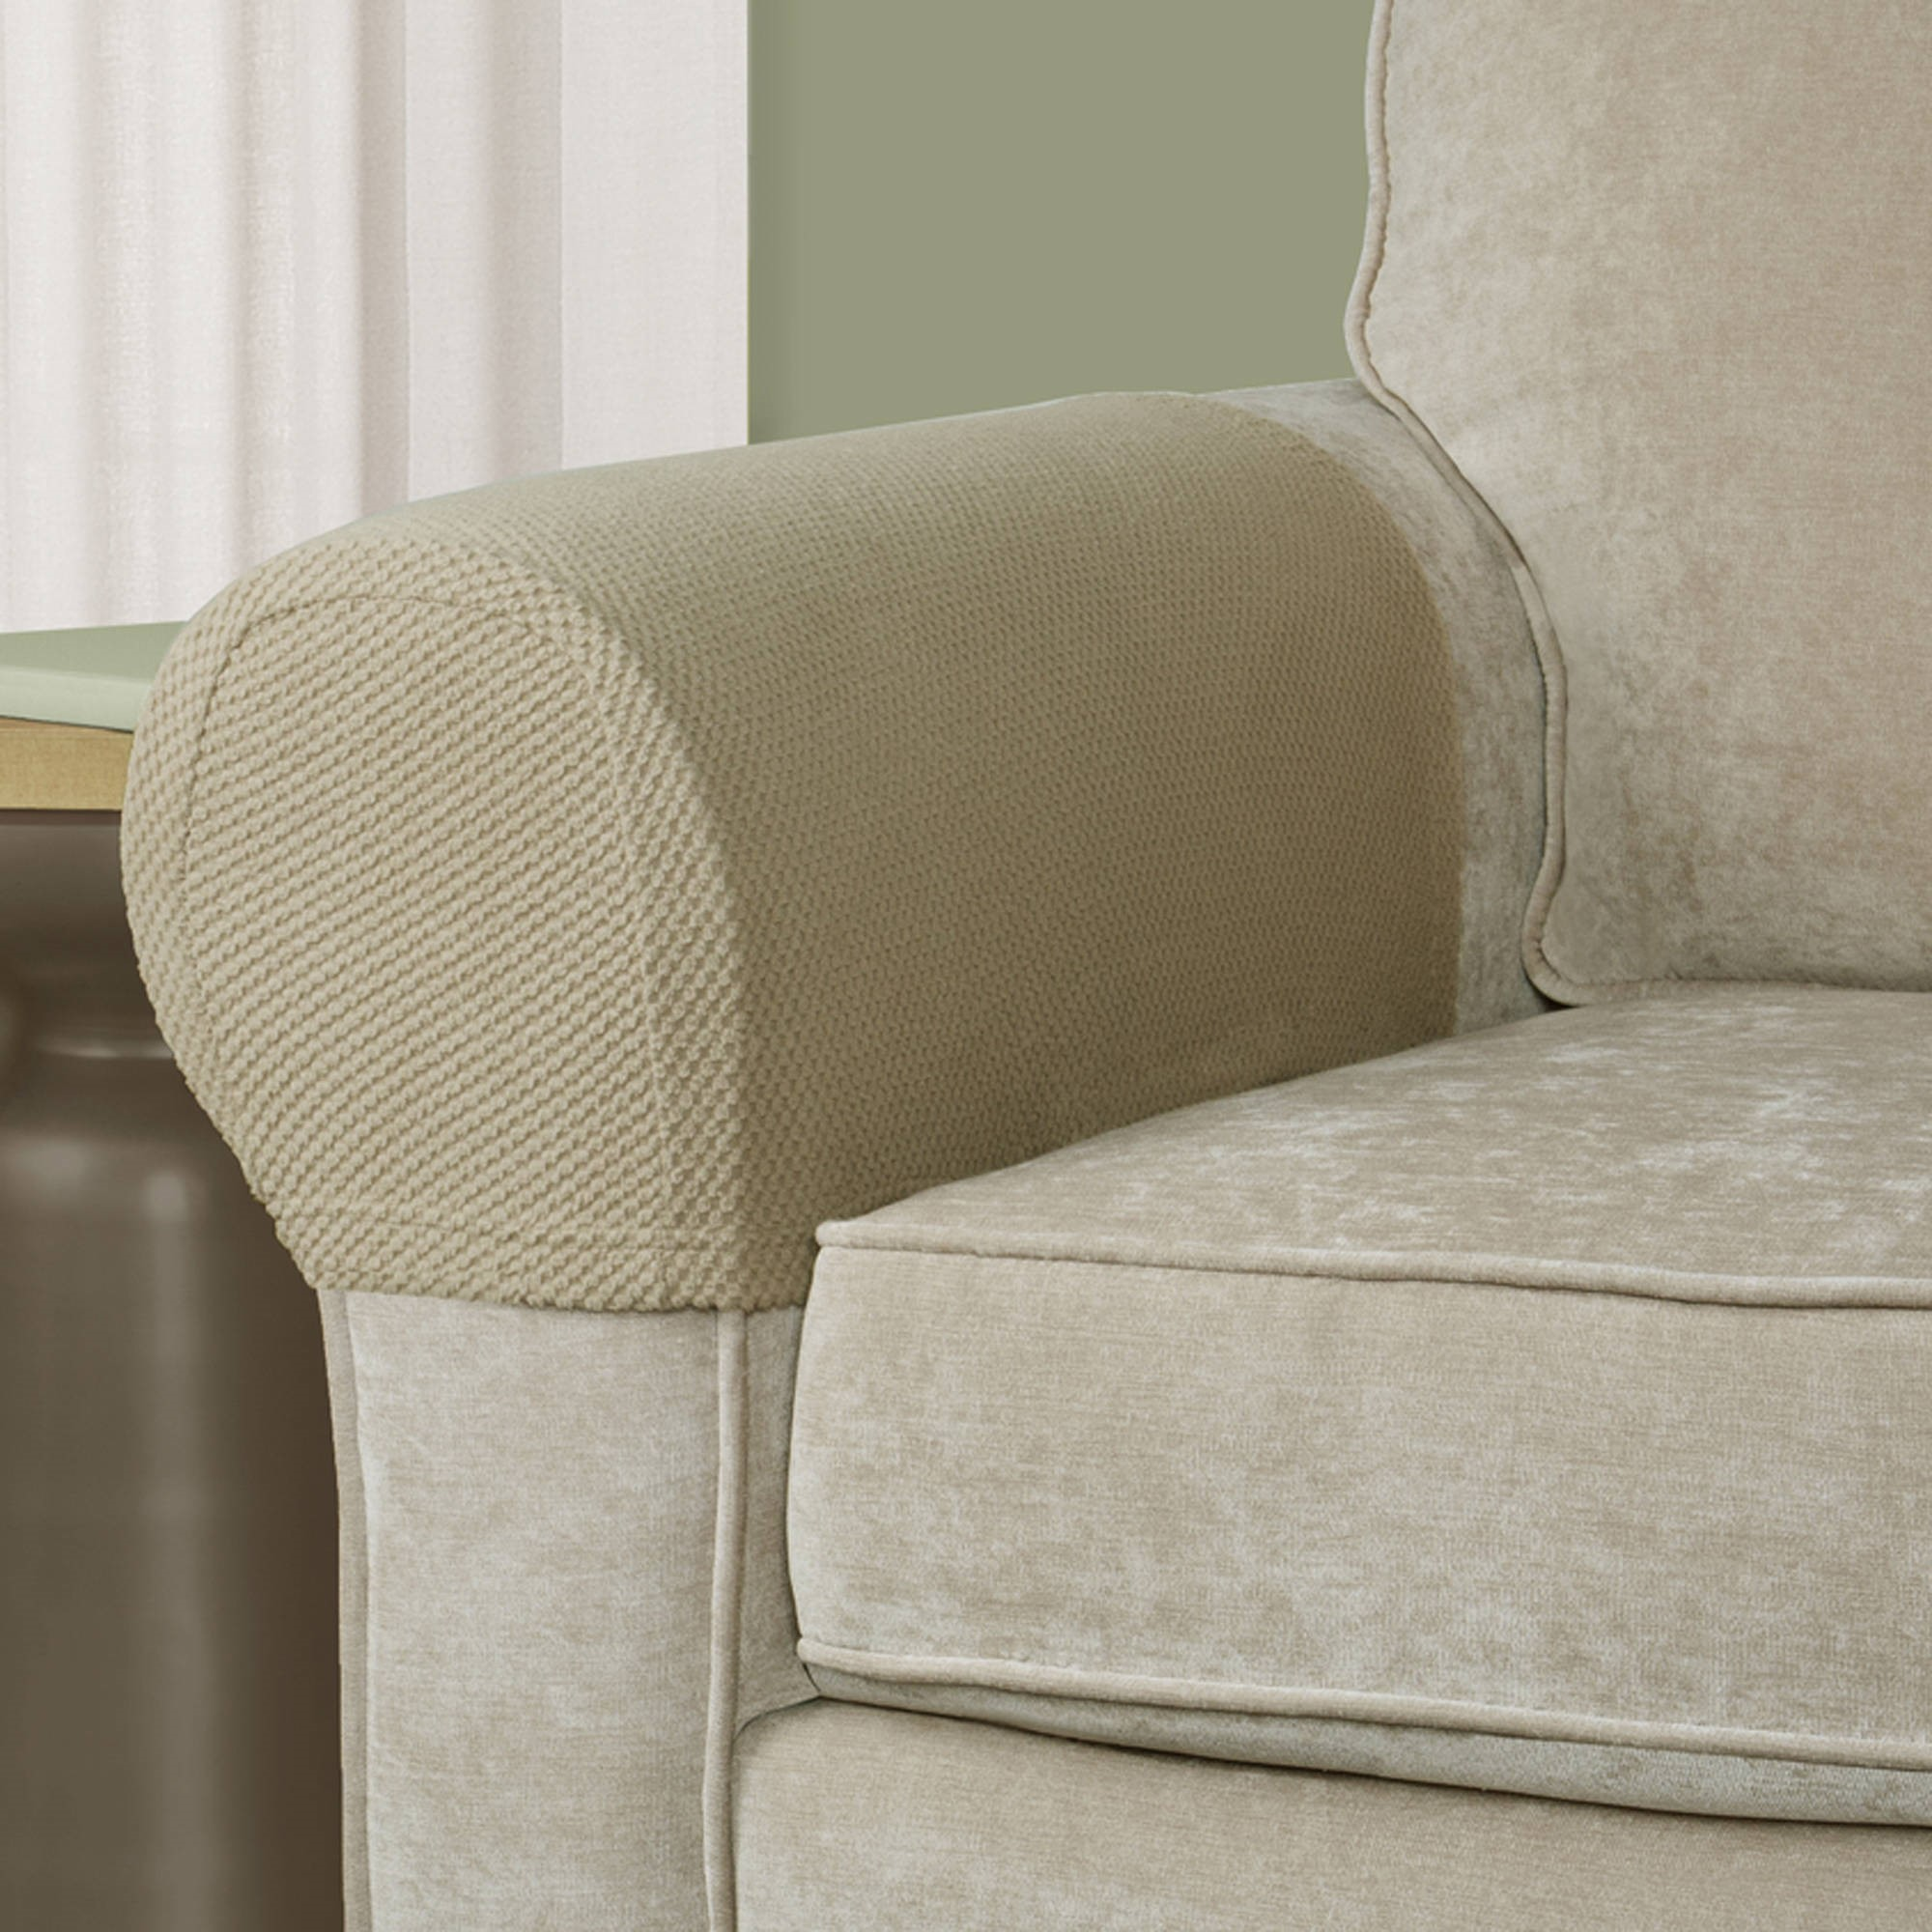 Exceptional Maytex Pixel Stretch Furniture Cover/slipcover Arm Covers, 2  Piece Arm  Chair